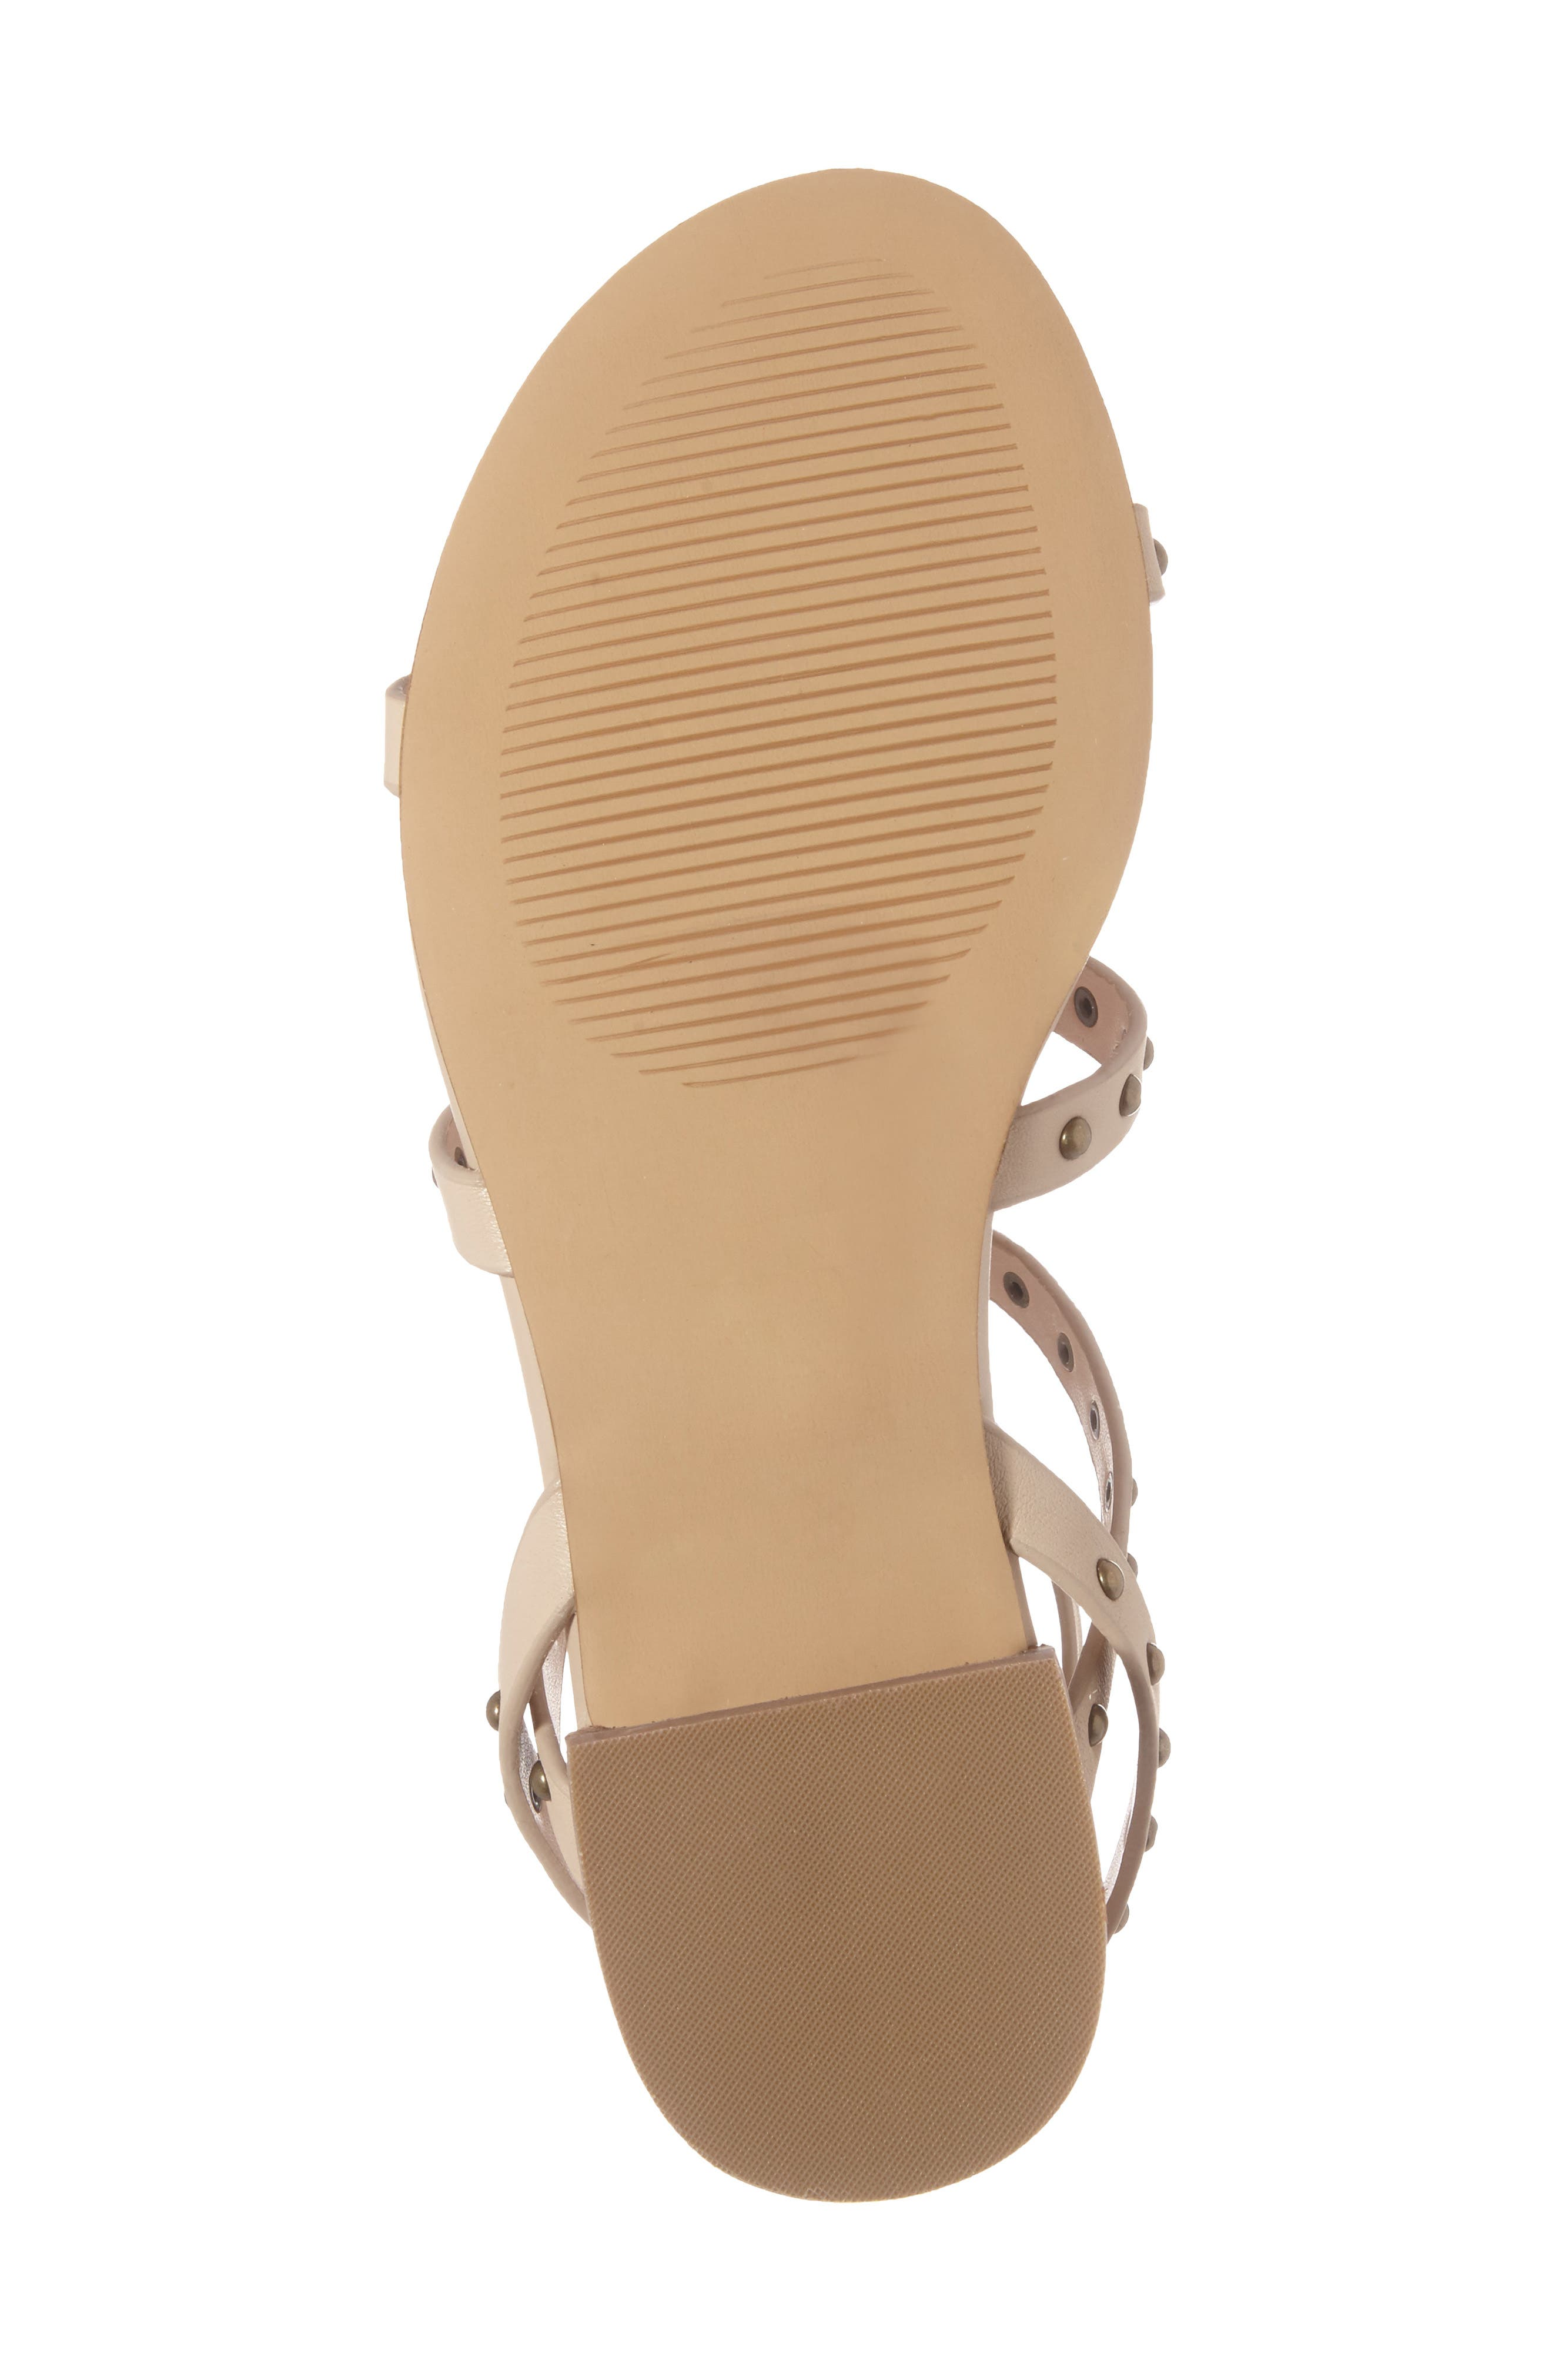 Celine Sandal,                             Alternate thumbnail 12, color,